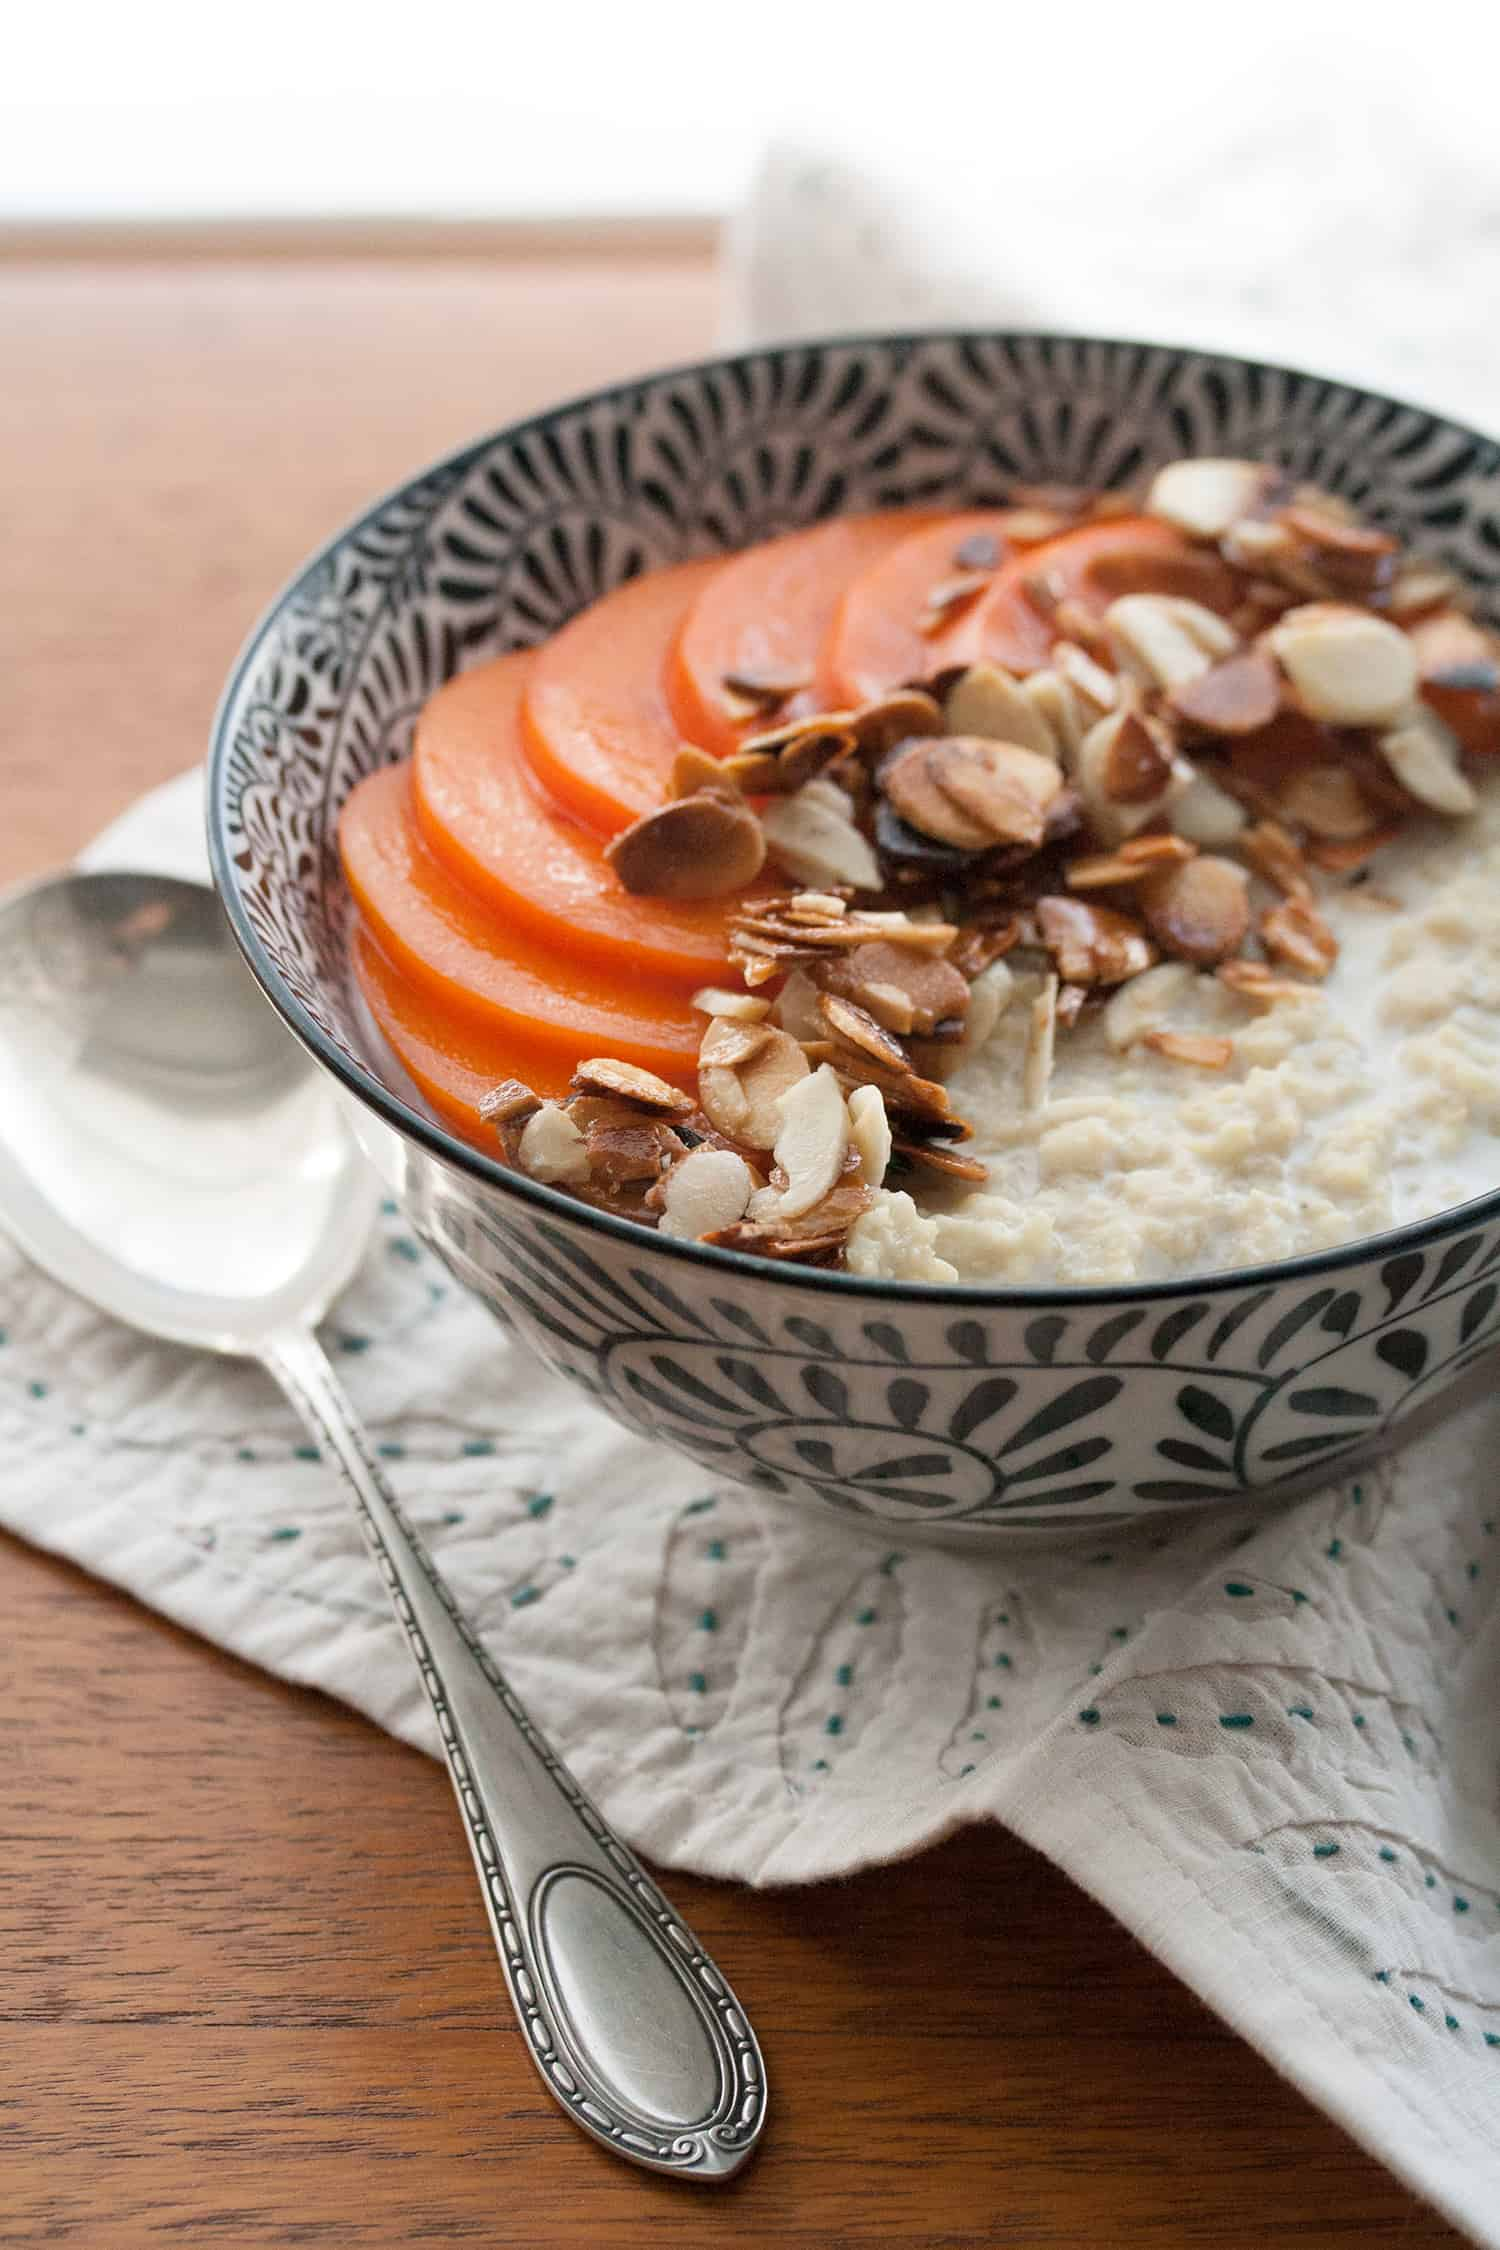 Millet Porridge with Toasted Almonds and Persimmons